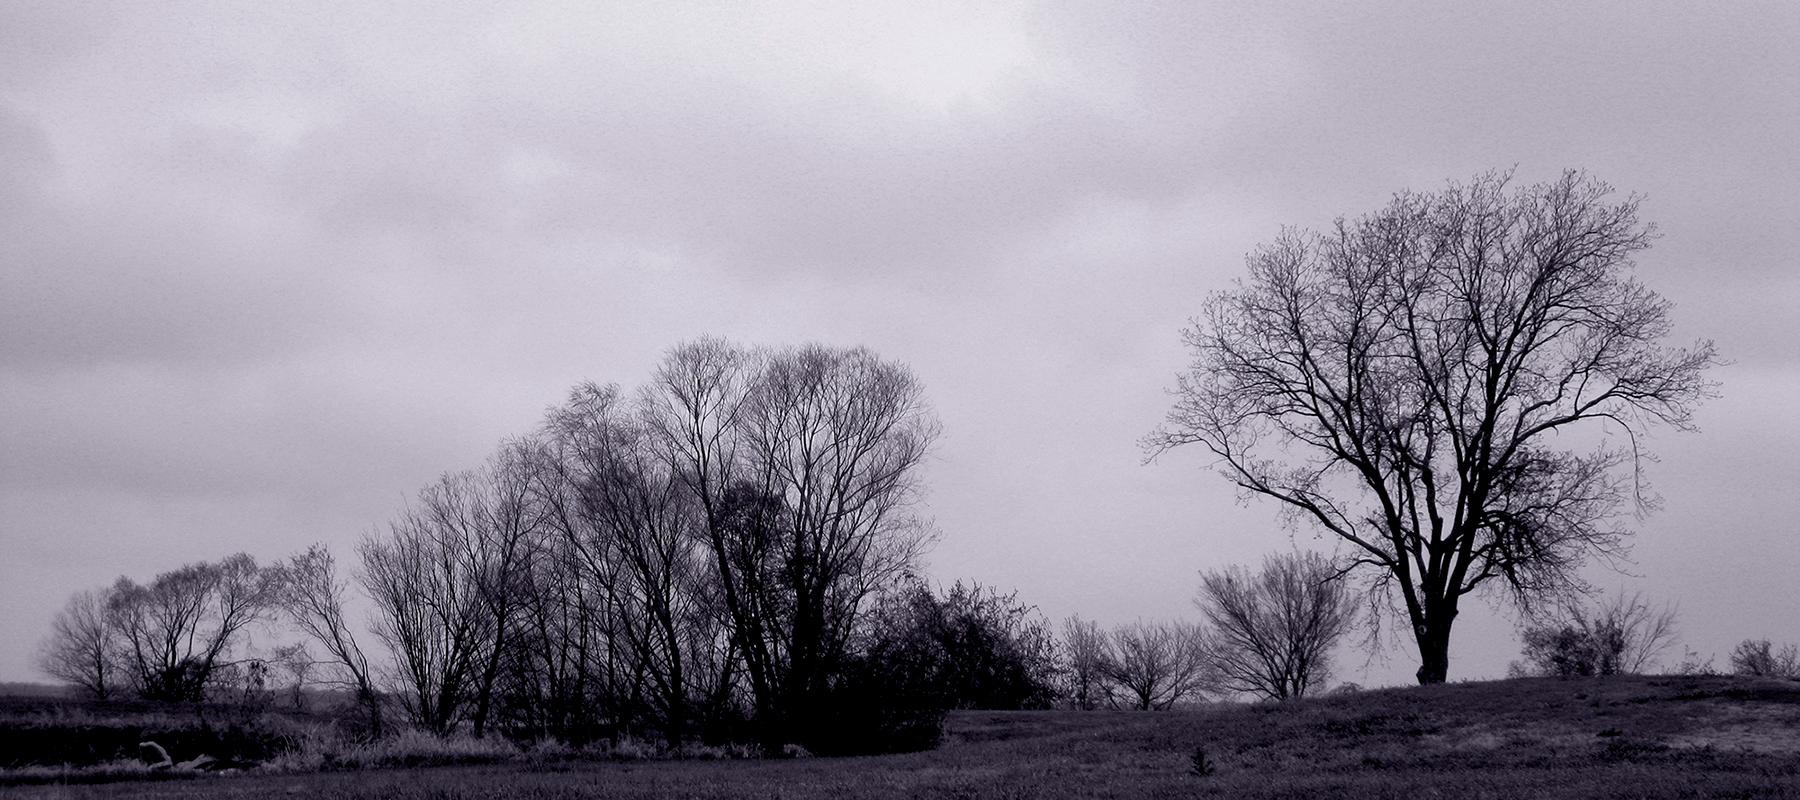 leafless winter tree silhouettes against a cloudy sky